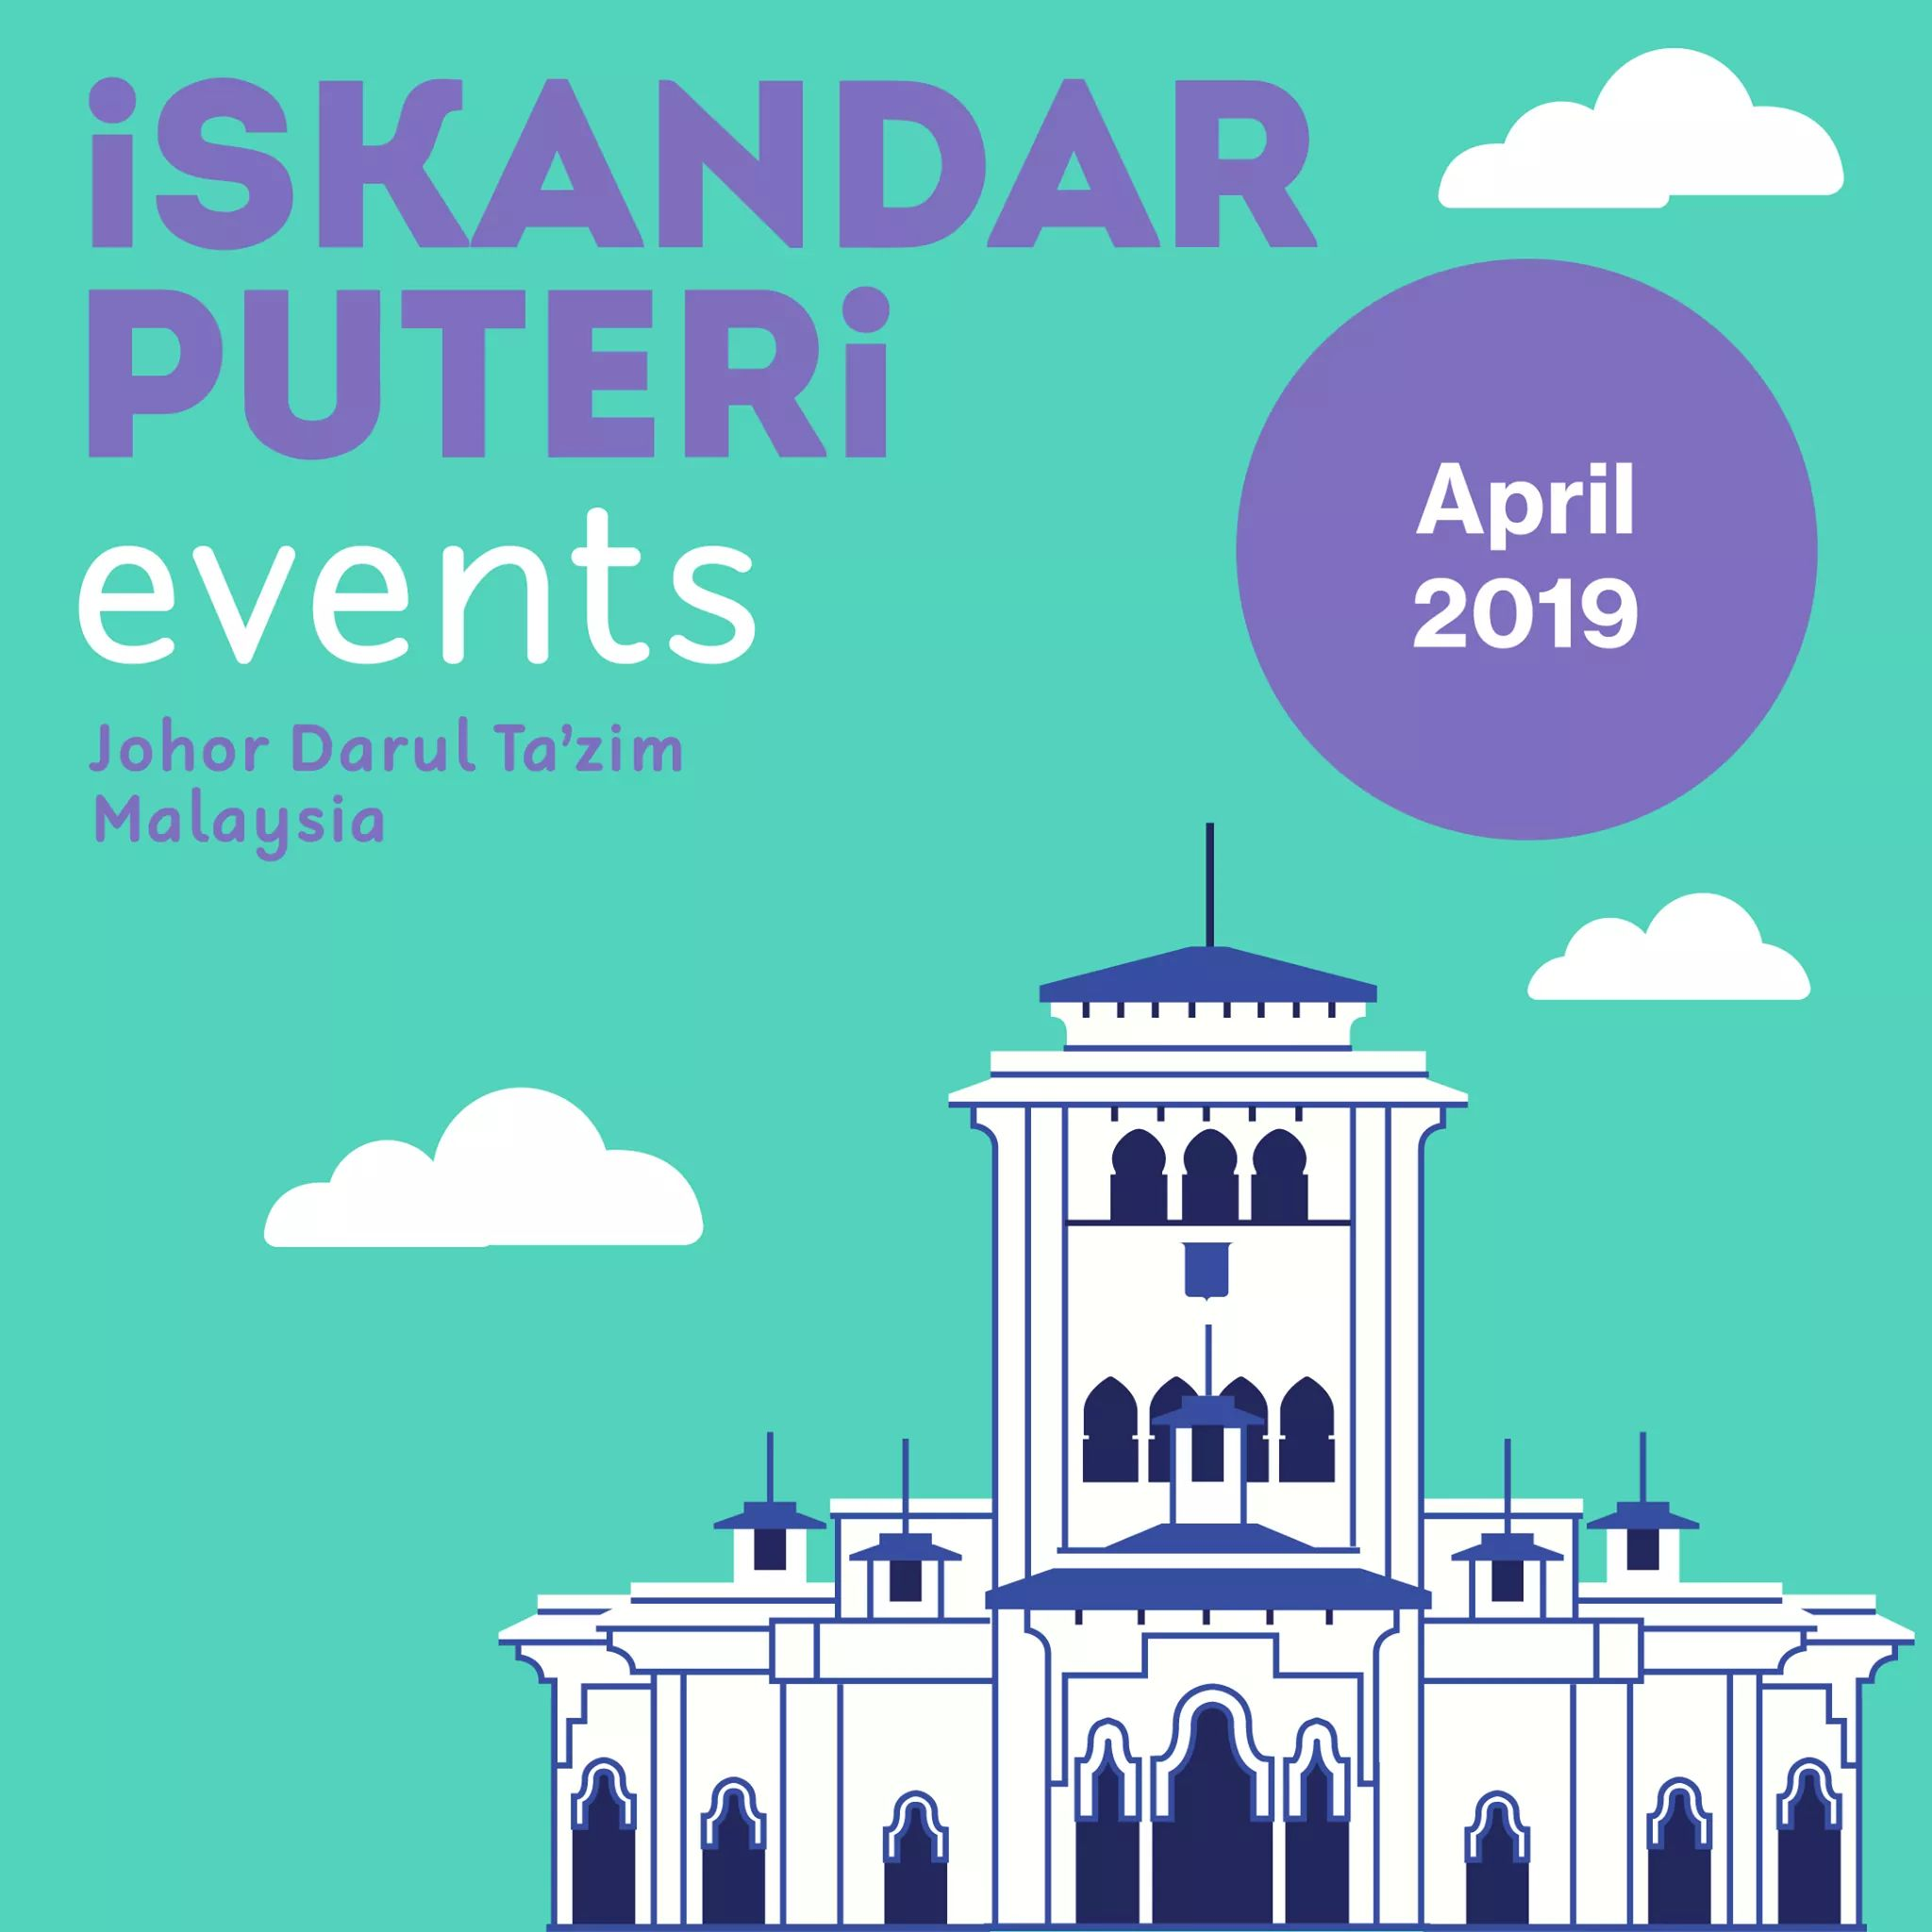 Iskandar Puteri April 2019 Events